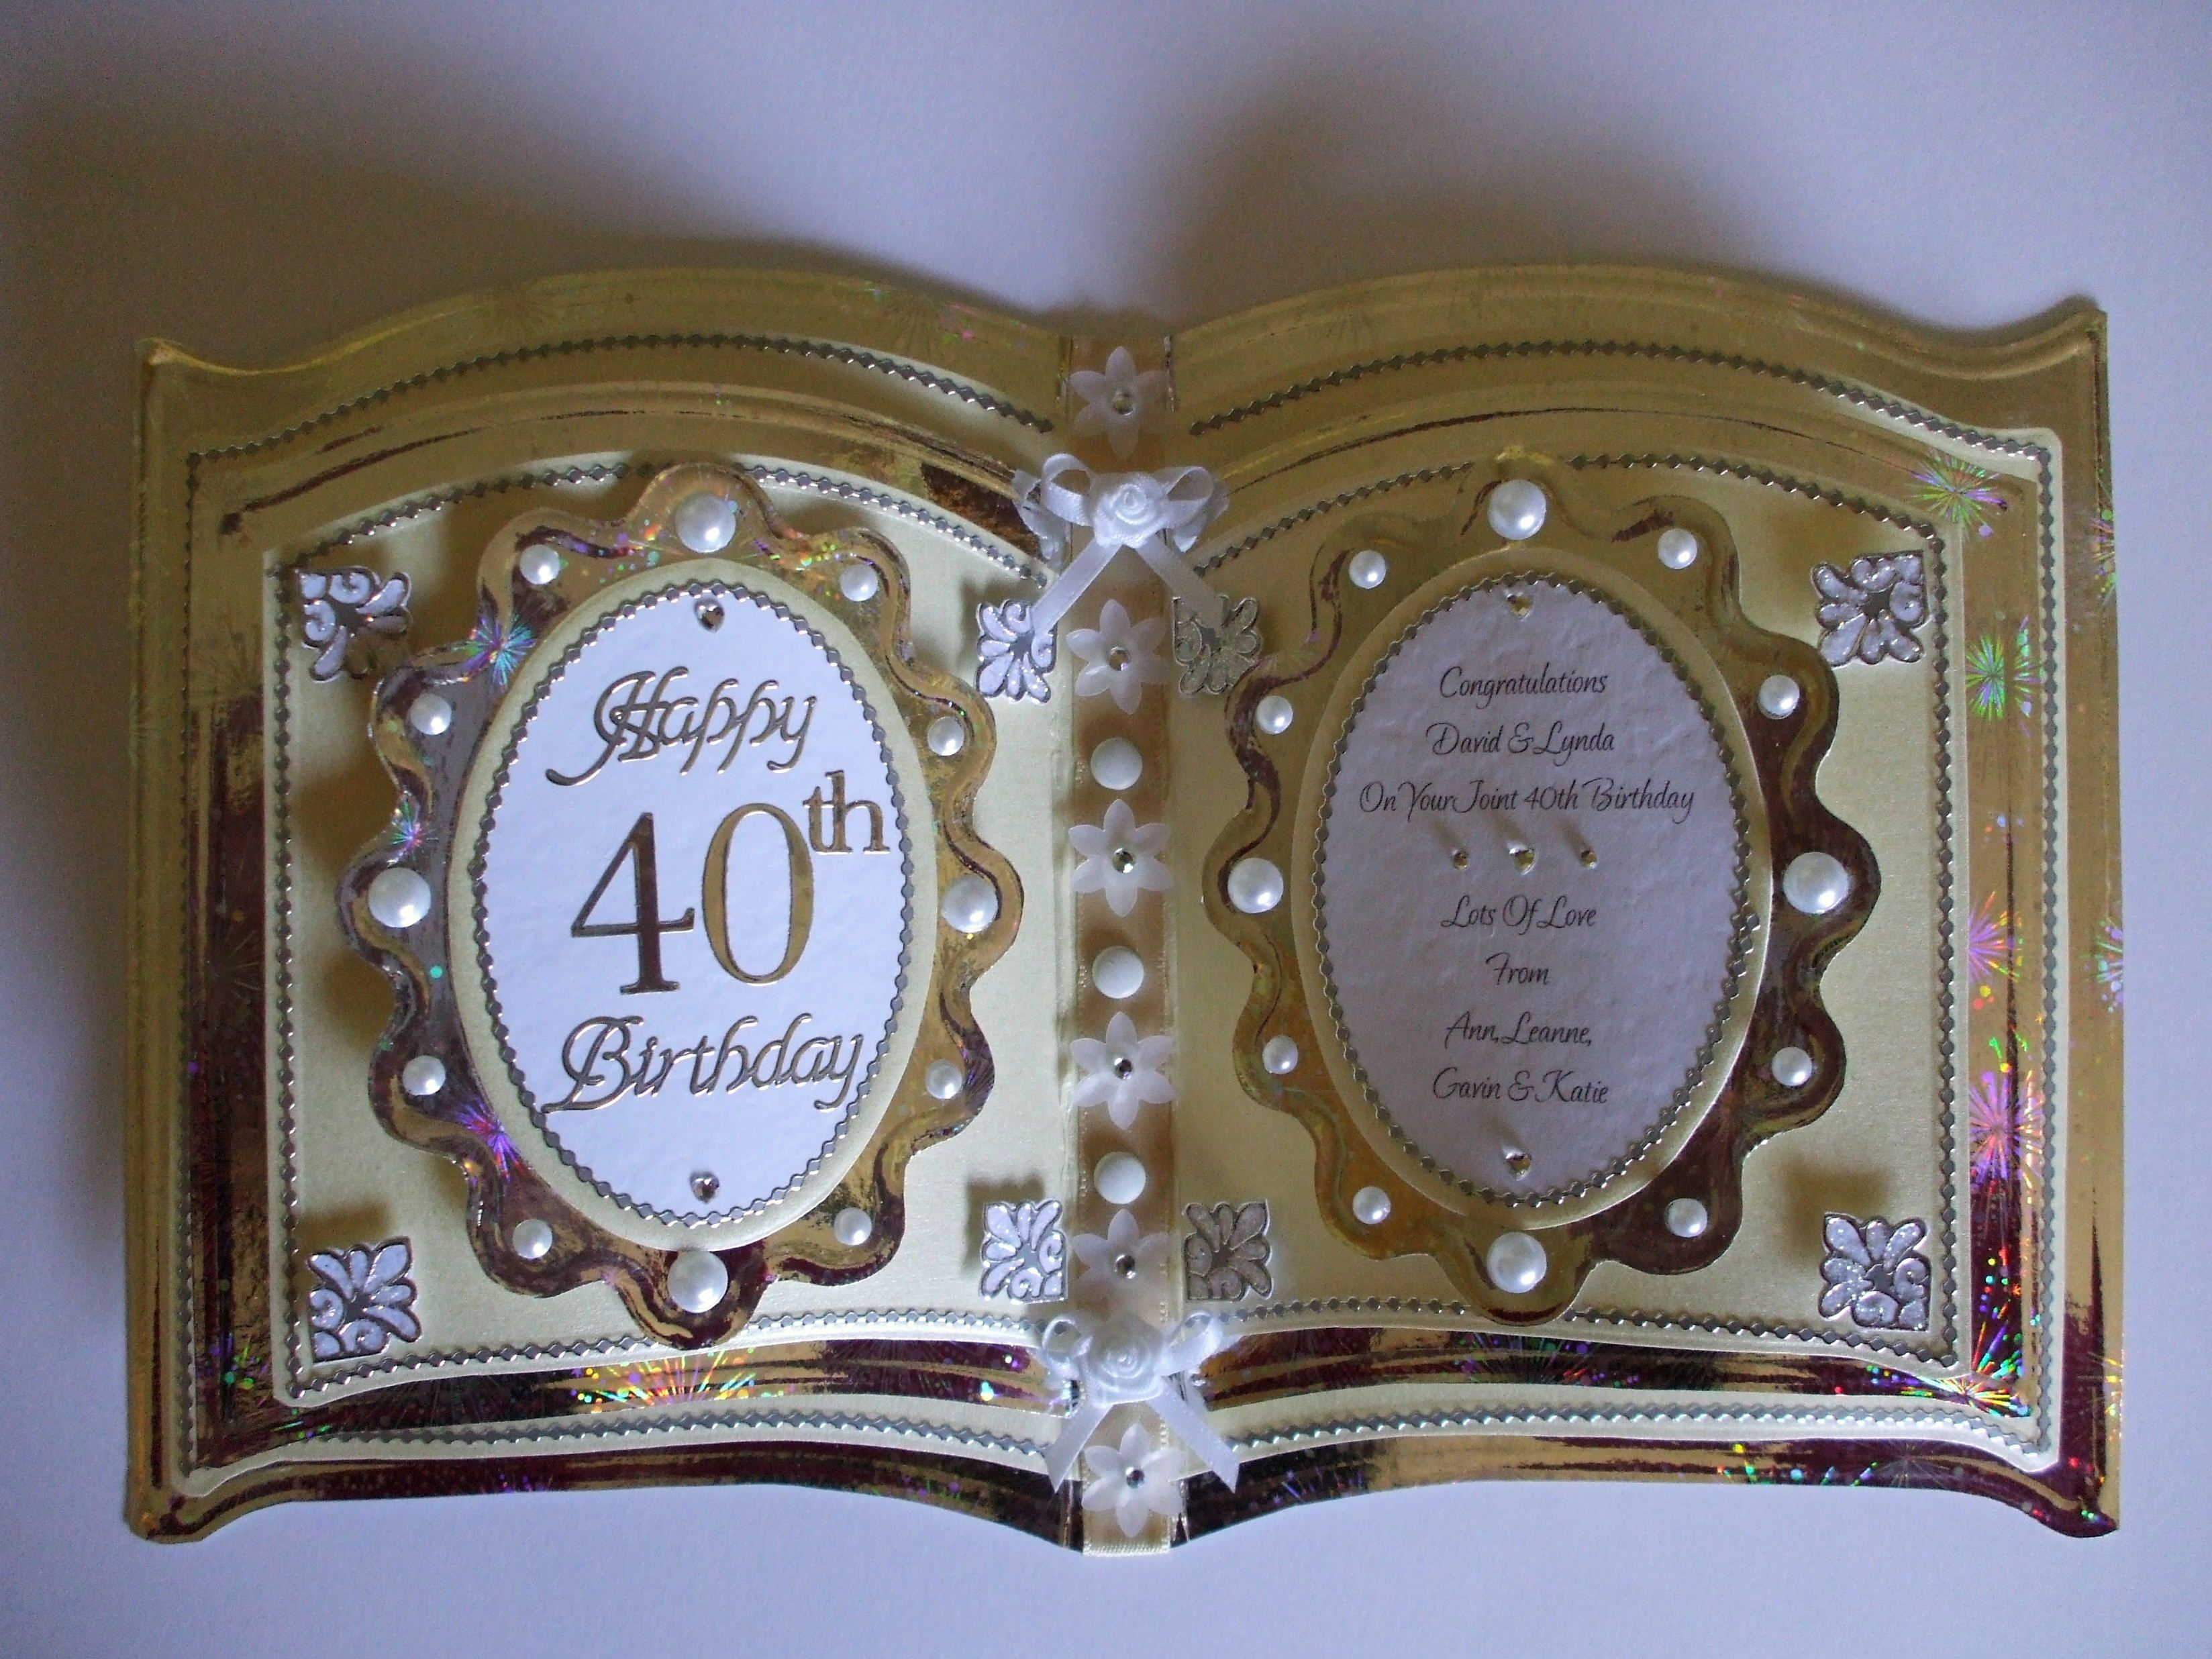 Commission 40th Birthday Bookatrix 40th Birthday Cards Crafters Companion Cards Shaped Cards